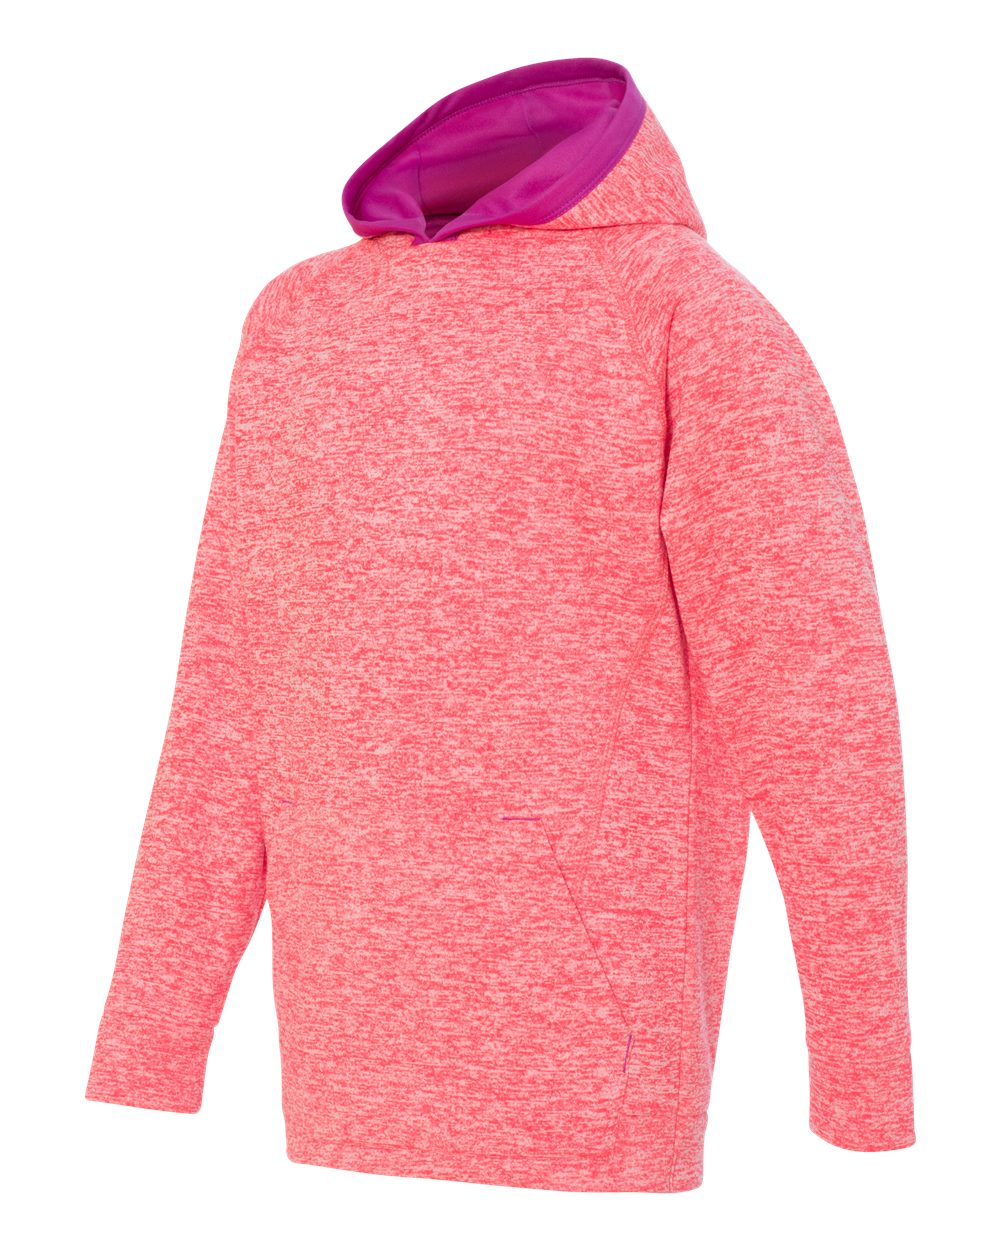 click to view Fire Coral/ Magenta